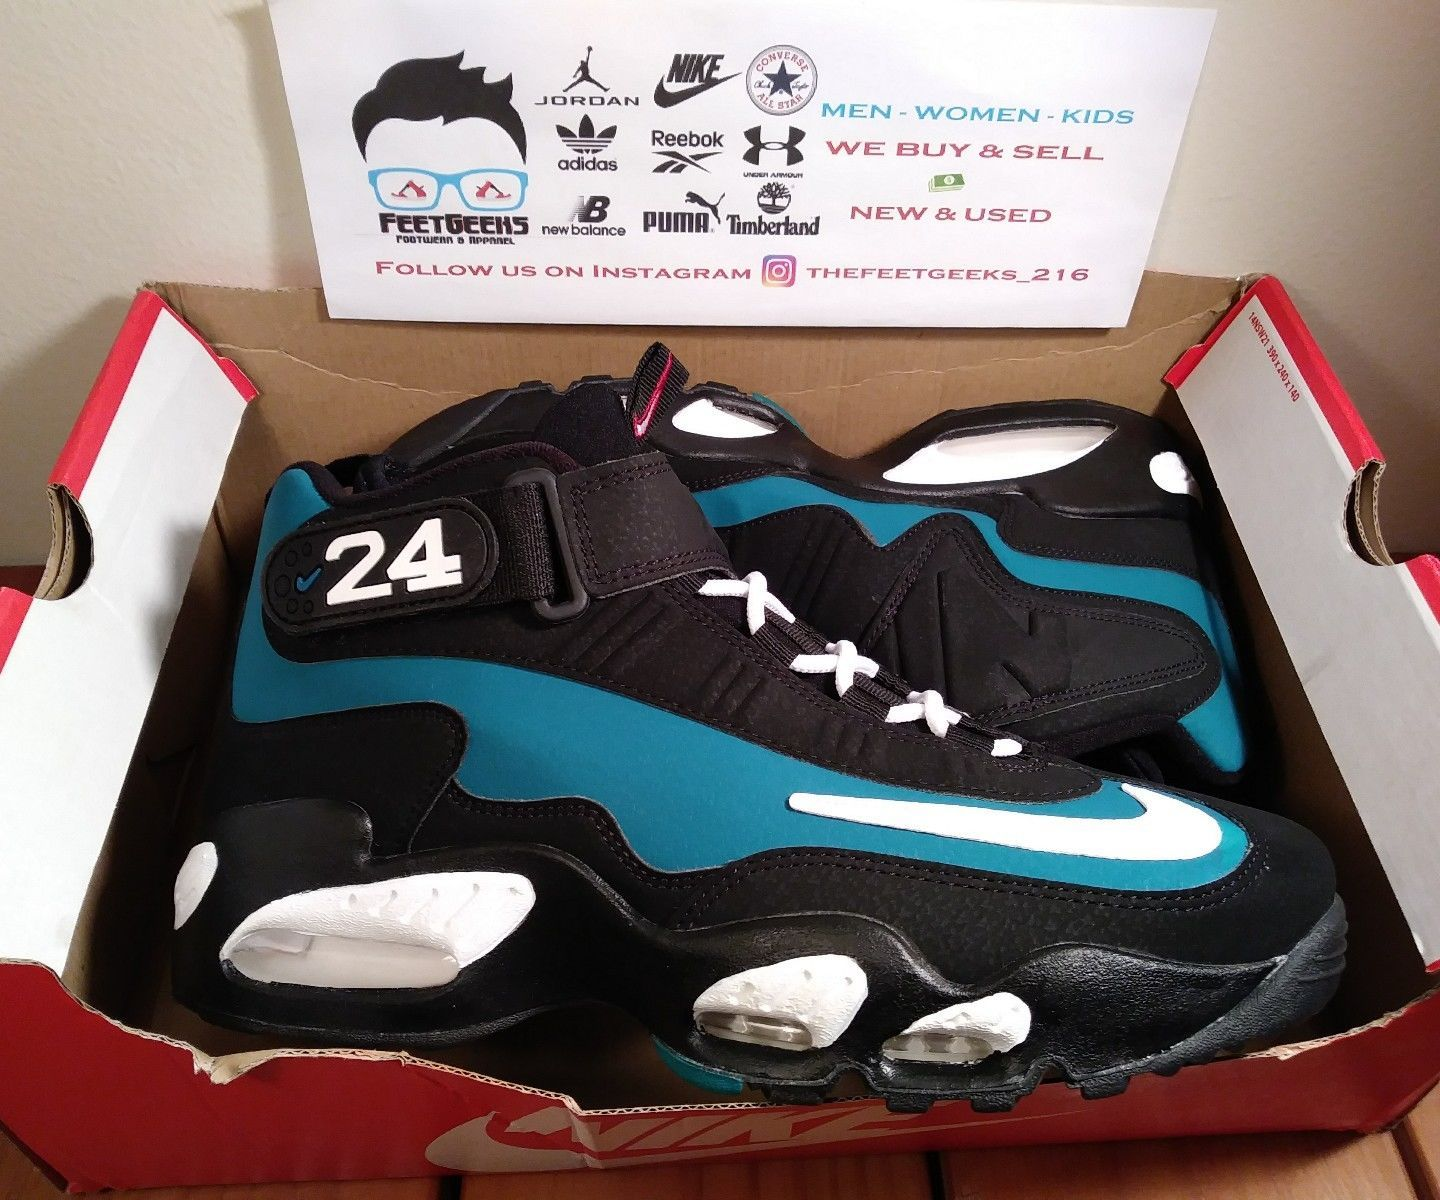 Nike Air Griffey Max 1 Mens Shoes Size 11 New with Box